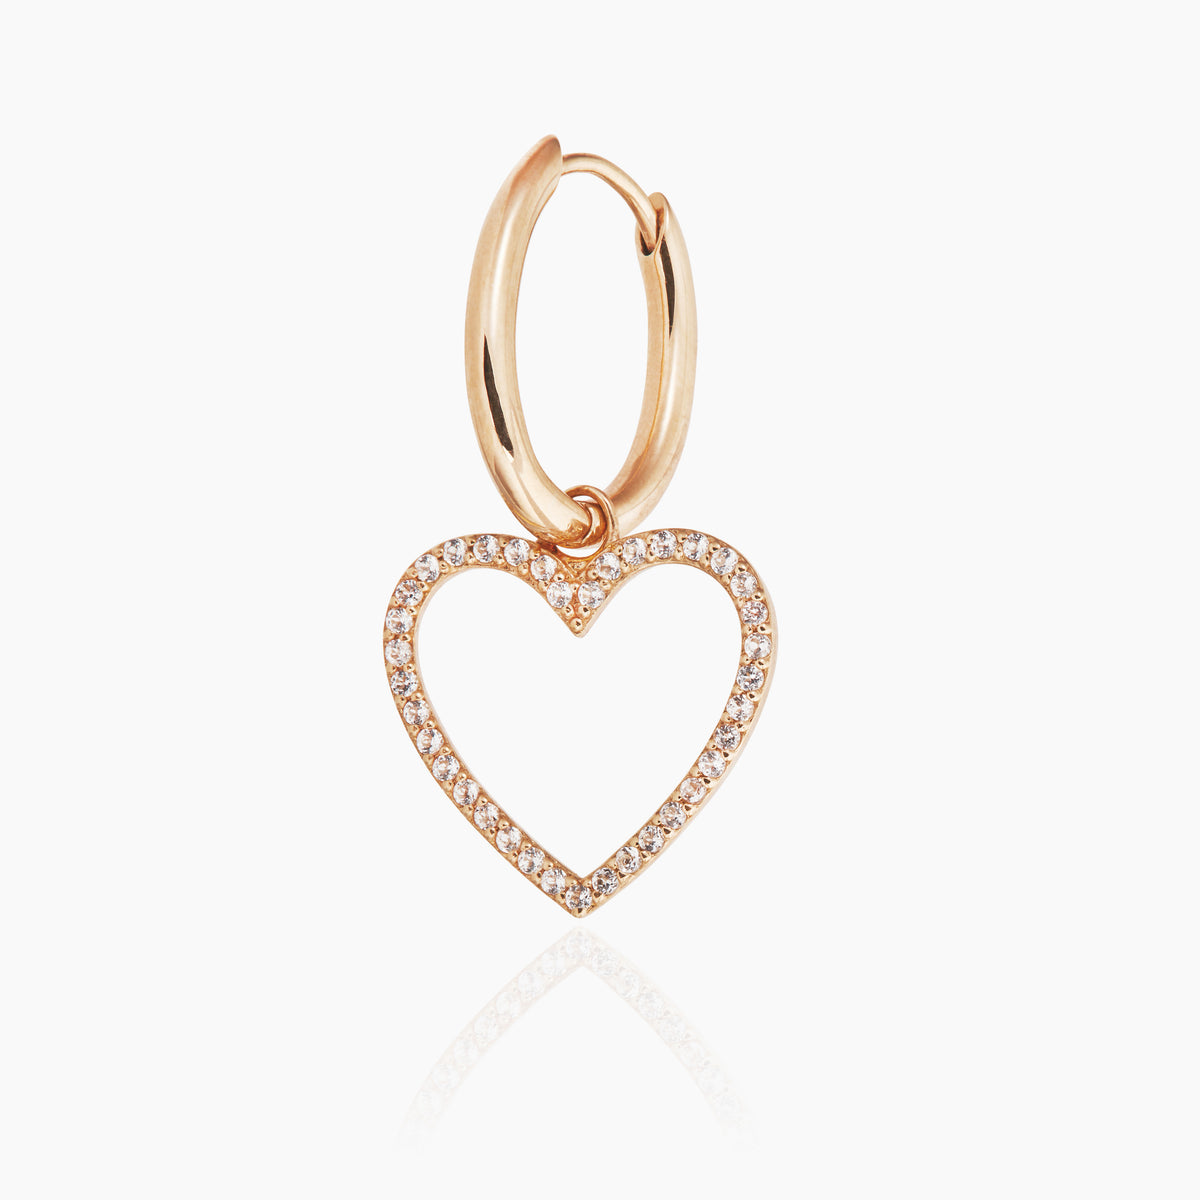 Heart Hoop with White Topaz